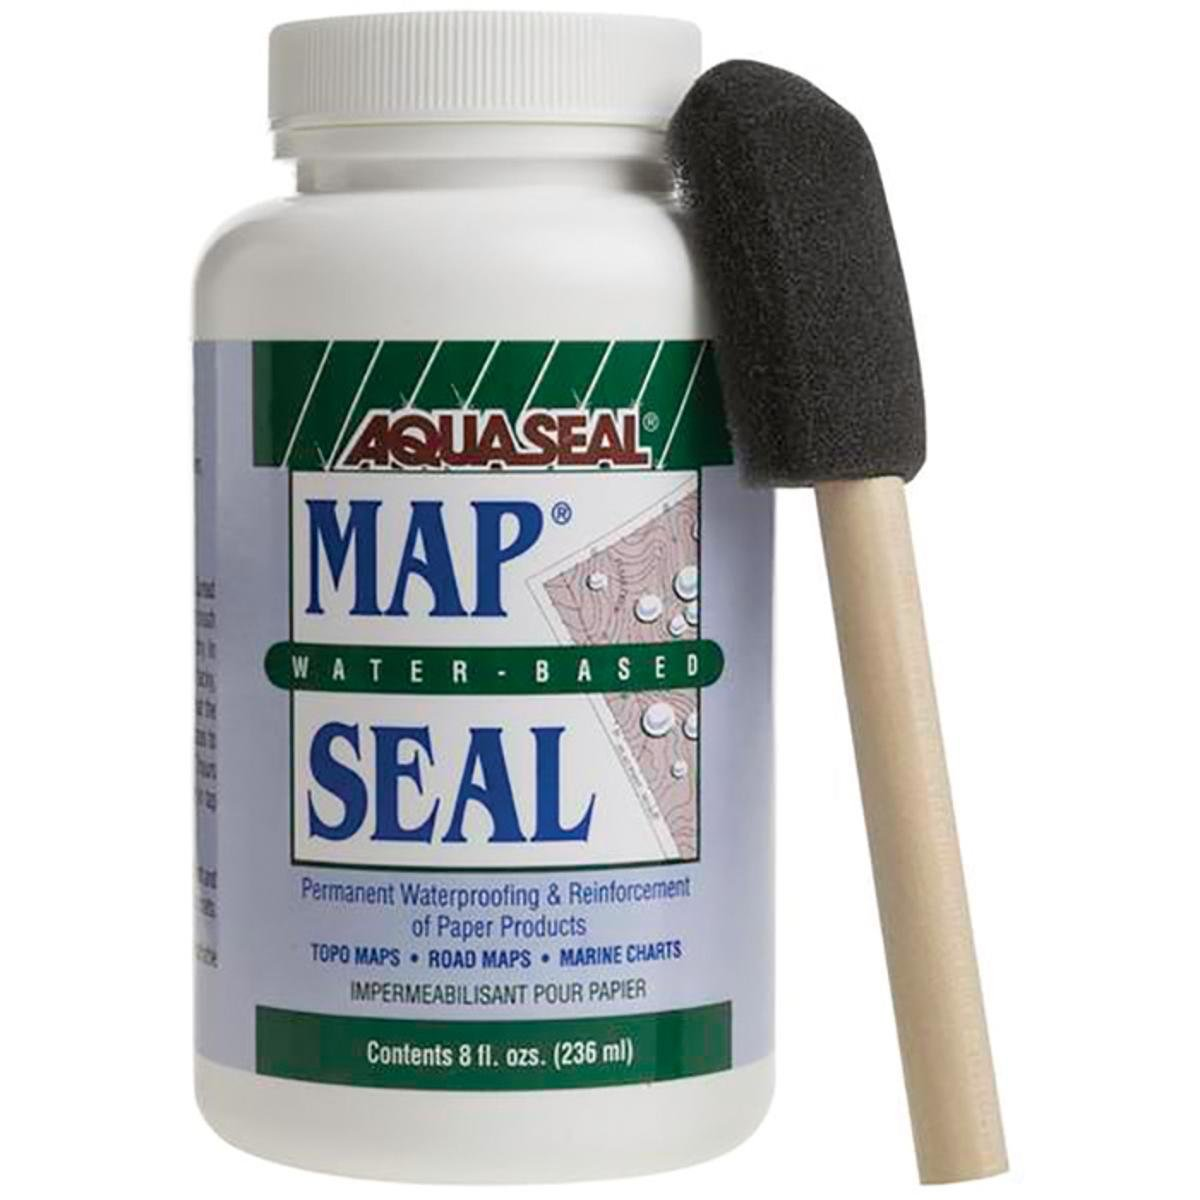 Aquaseal 370200 8 oz Map Seal Waterproofing for Maps